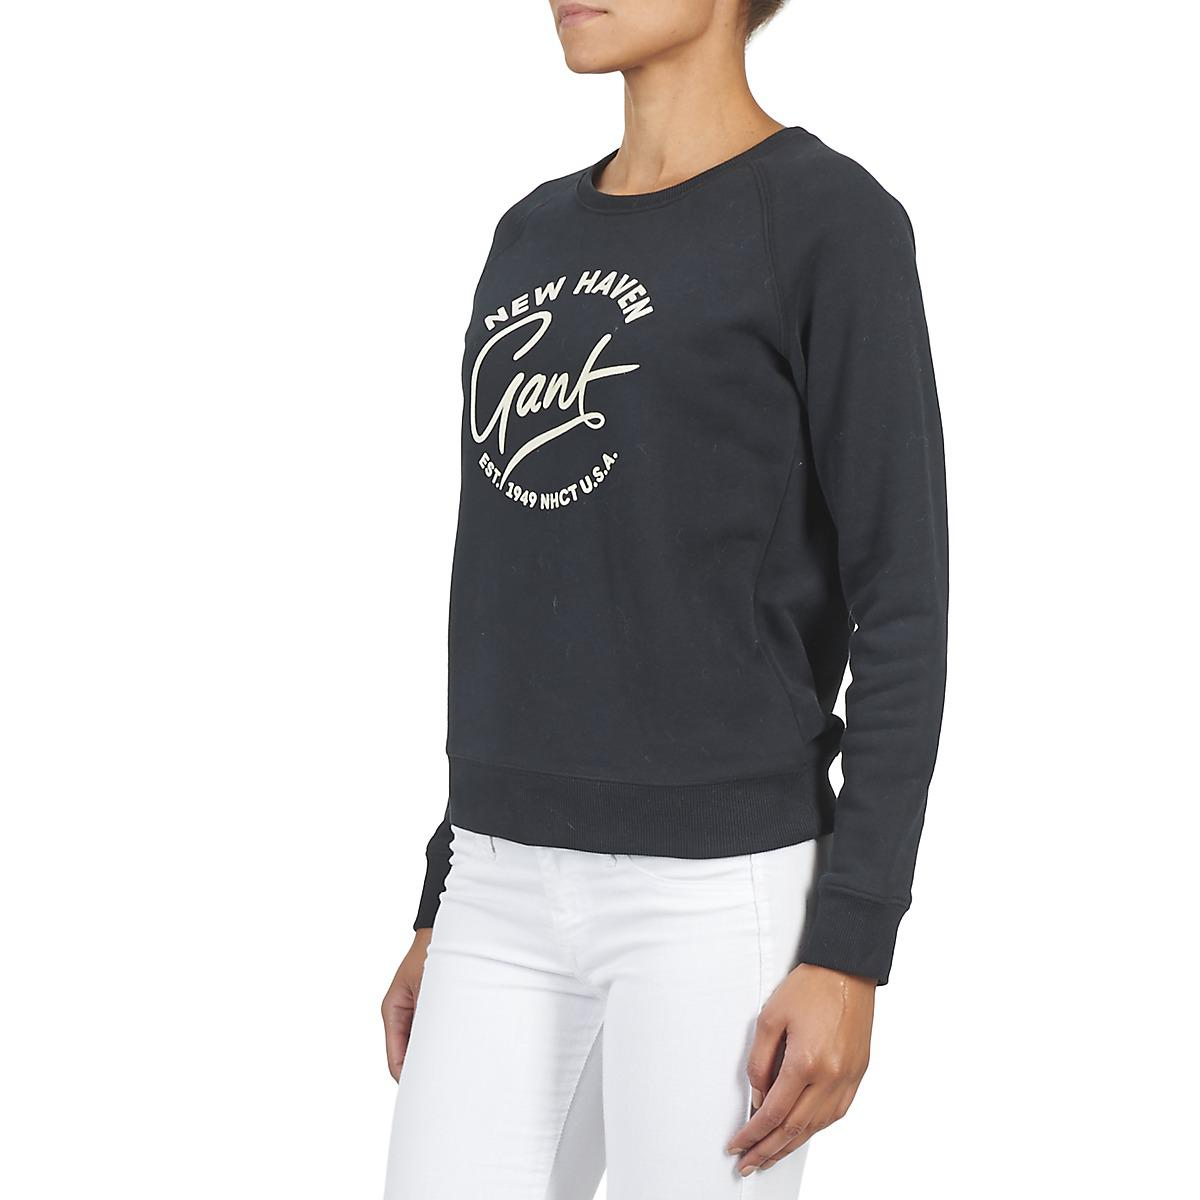 GANT Cotton Collegiate C-neck Sweatshirt in Black